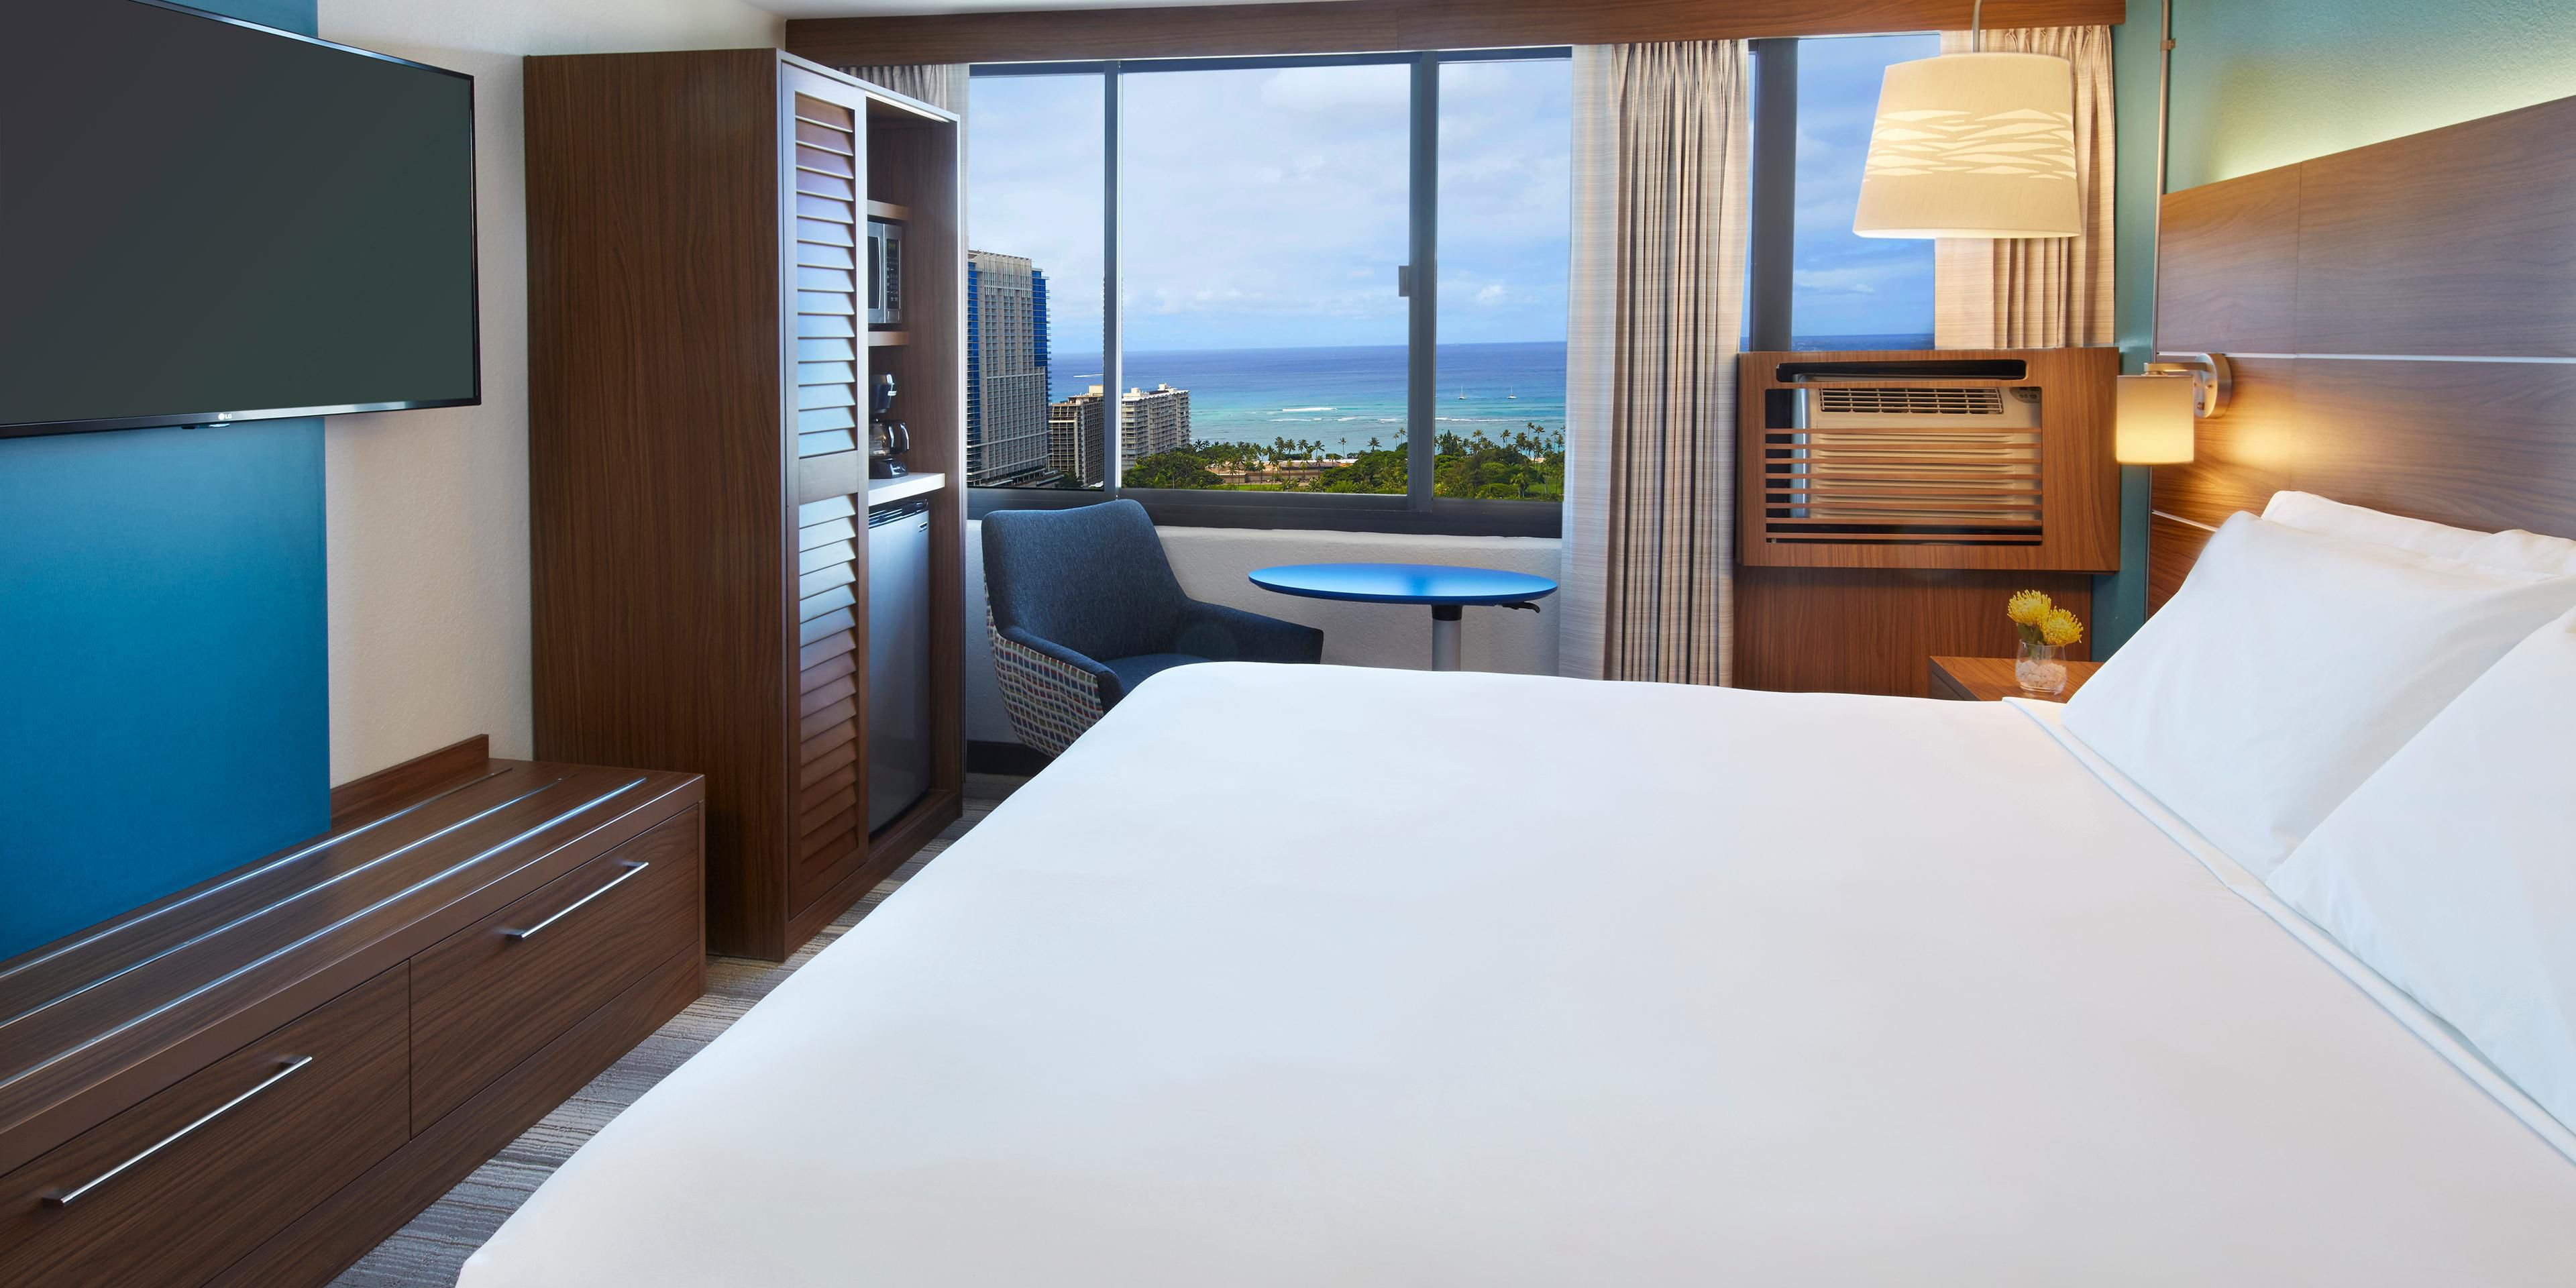 chair cover express hawaii antique sewing with drawer holiday inn honolulu waikiki hotel by ihg 4682085567 2x1